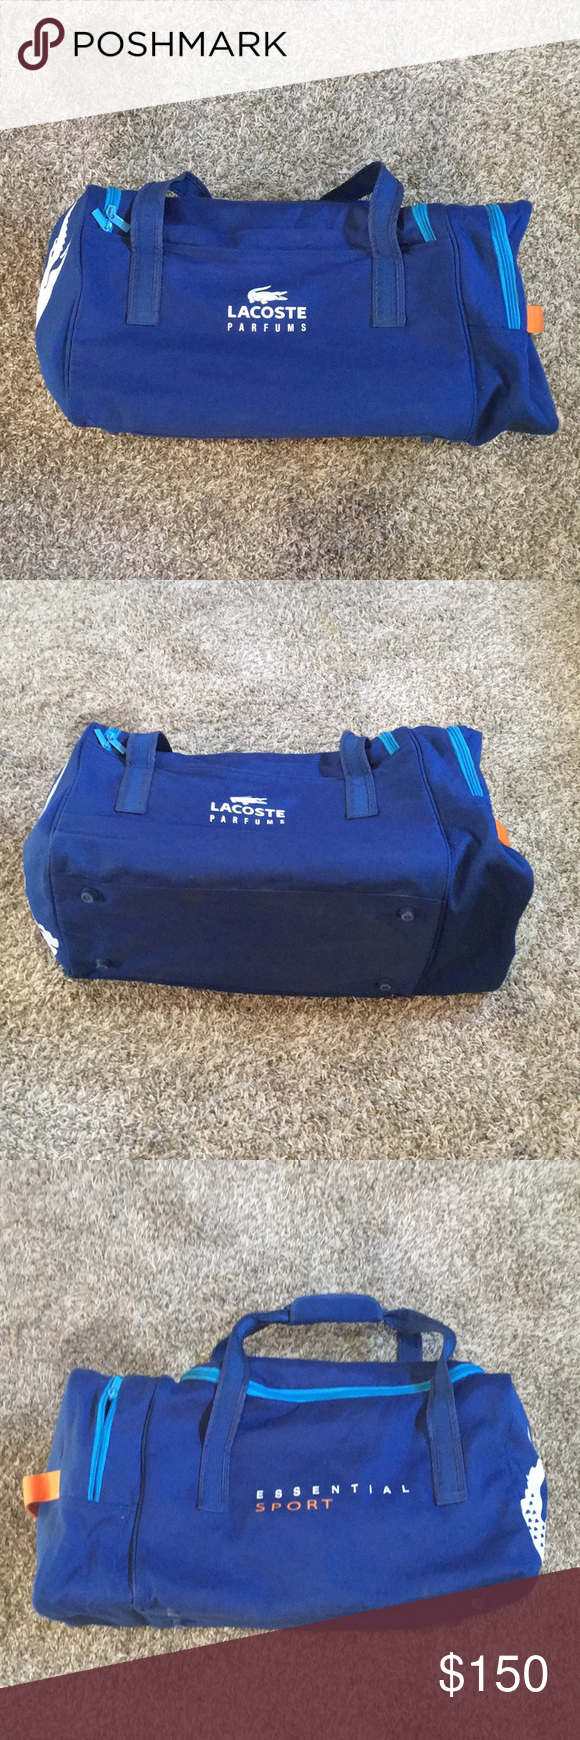 17eeba9e0b43 Lacoste Duffle Bag New Lacoste Duffle Bag. Very big